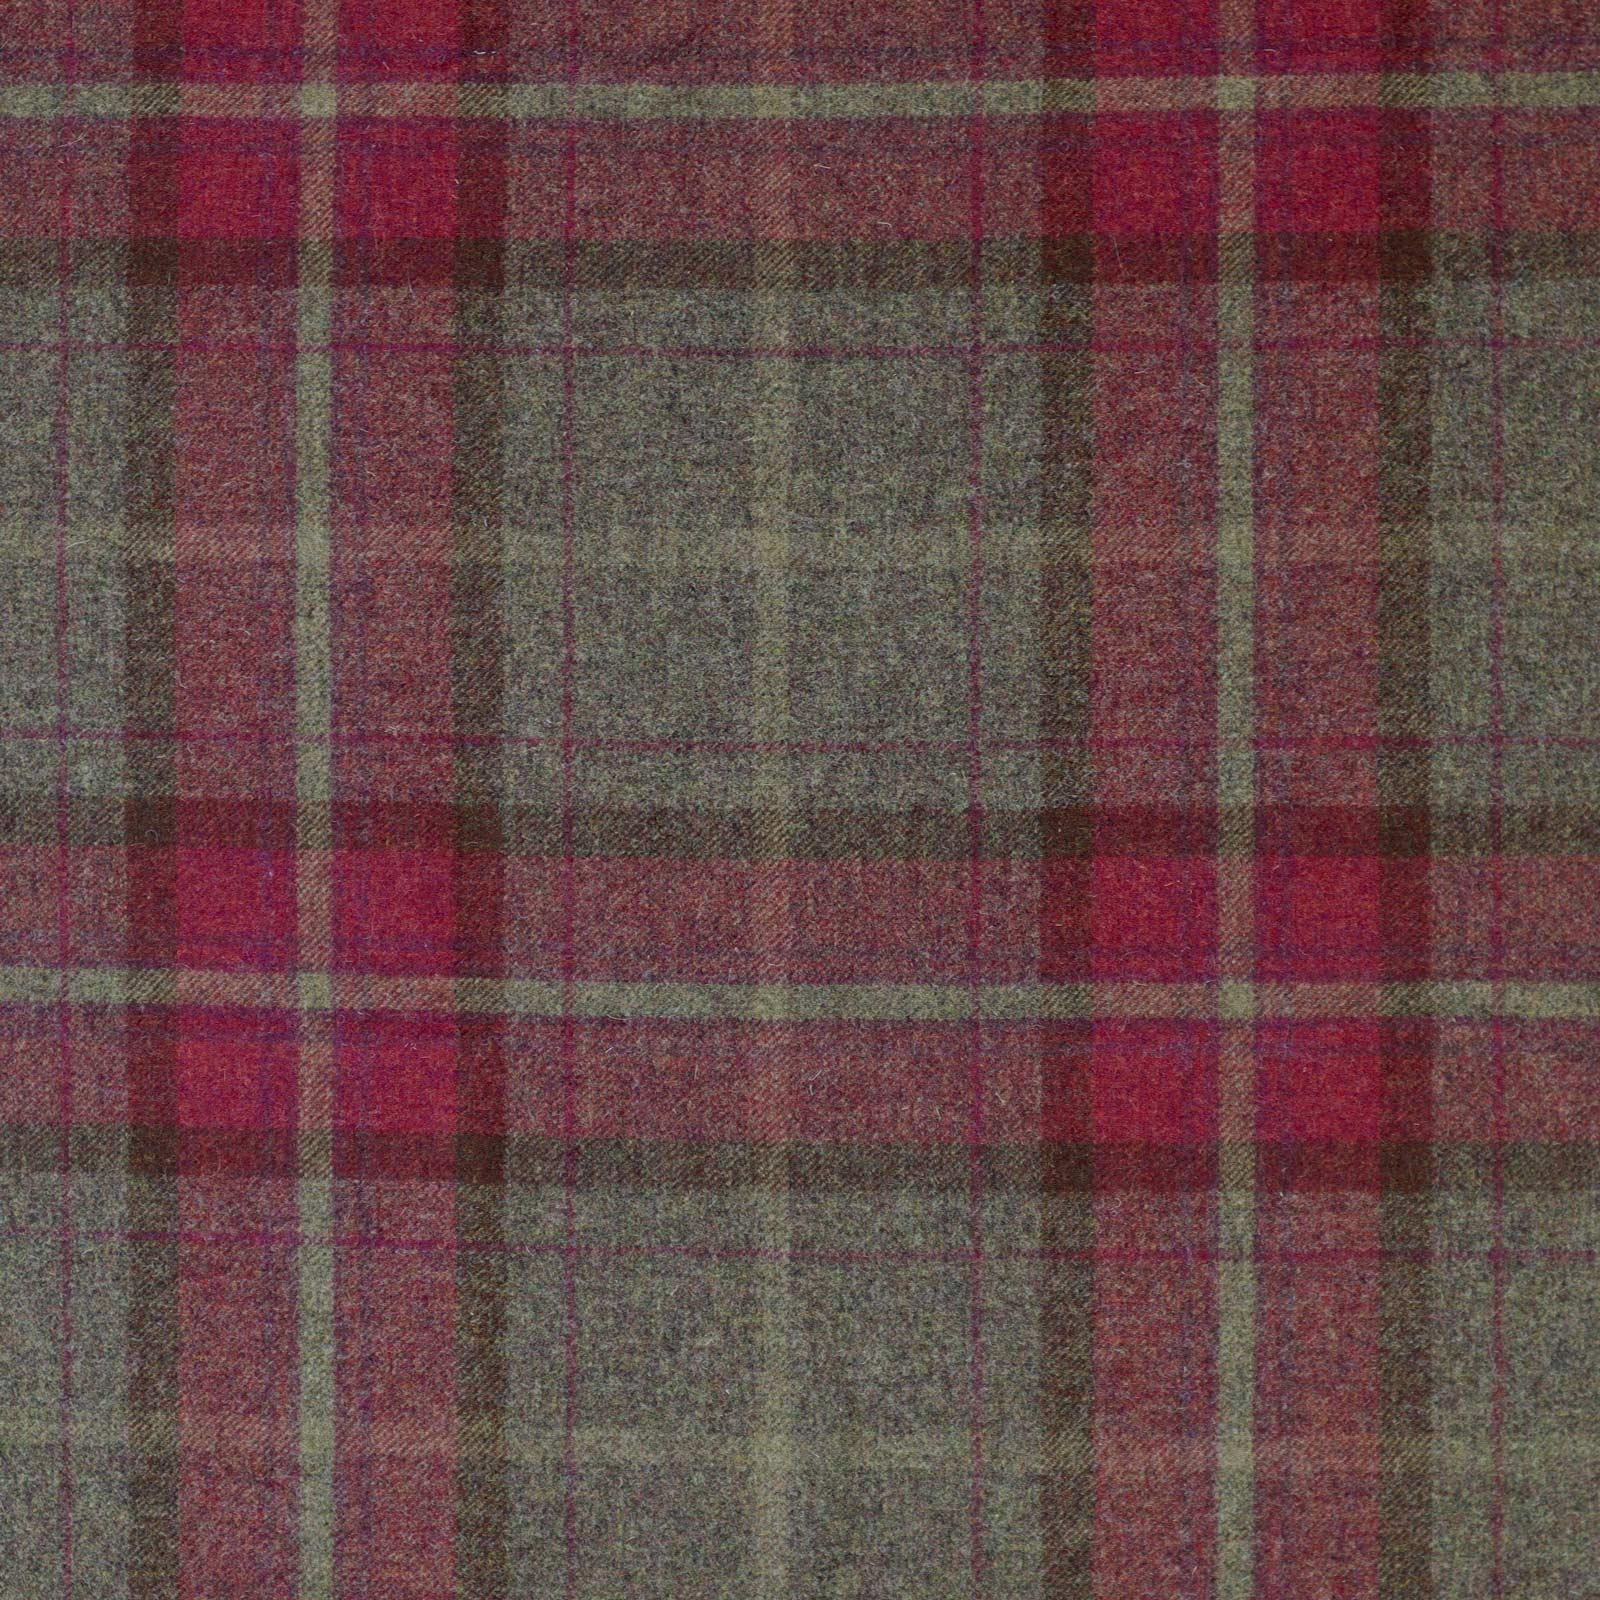 Ambodach Pembroke Made To Measure Curtains -  - Ideal Textiles